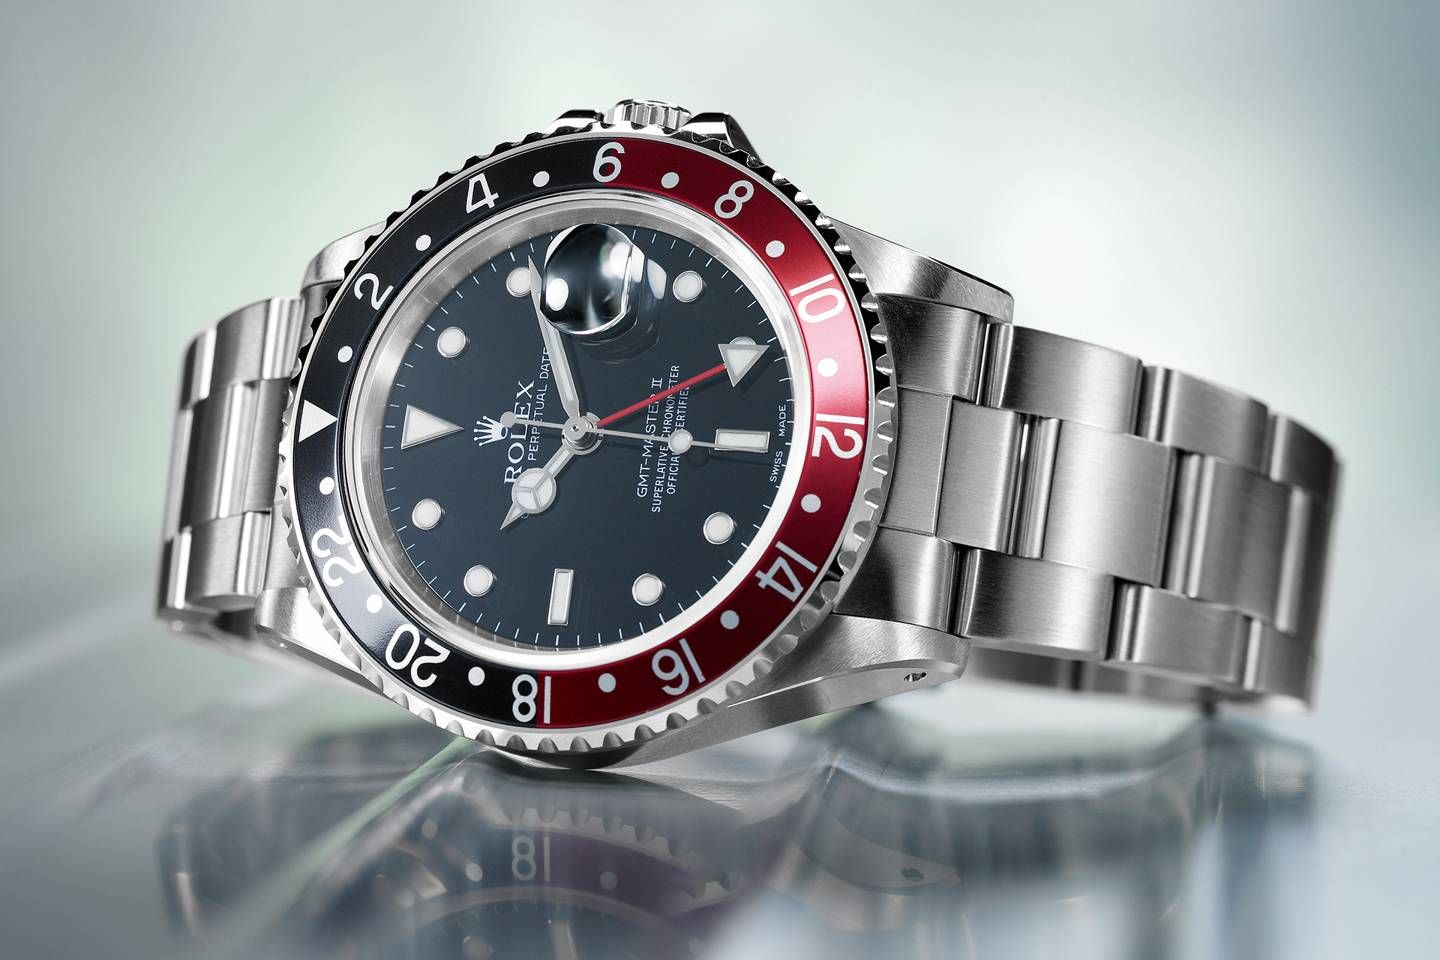 The GQ Guide to Rolex watches